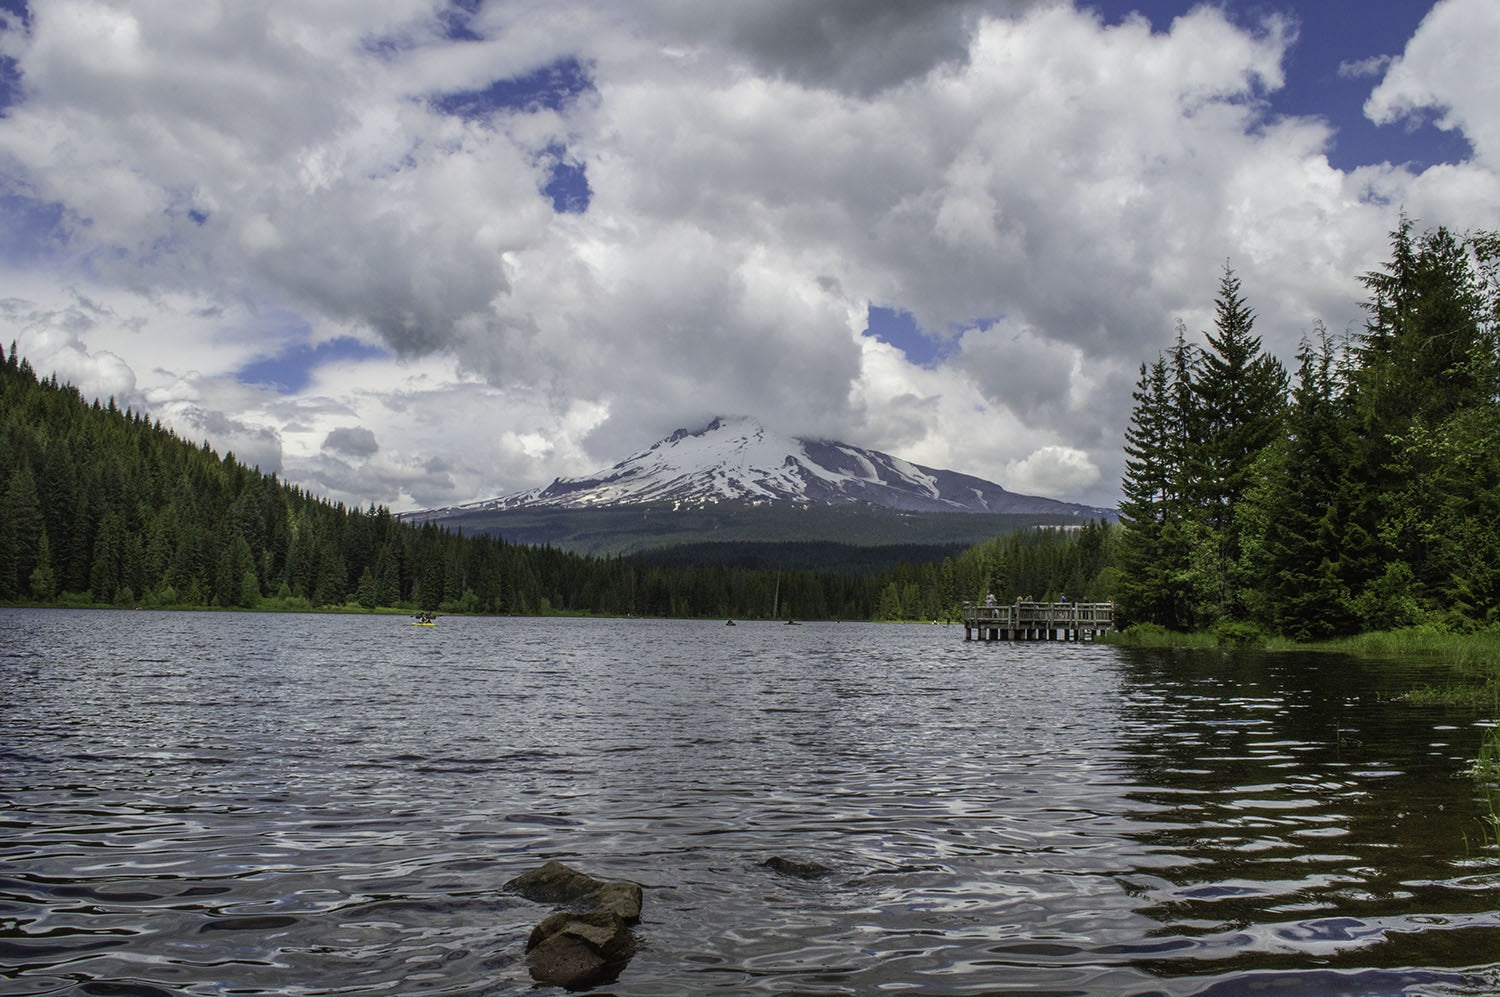 Day Trip to Trillium Lake